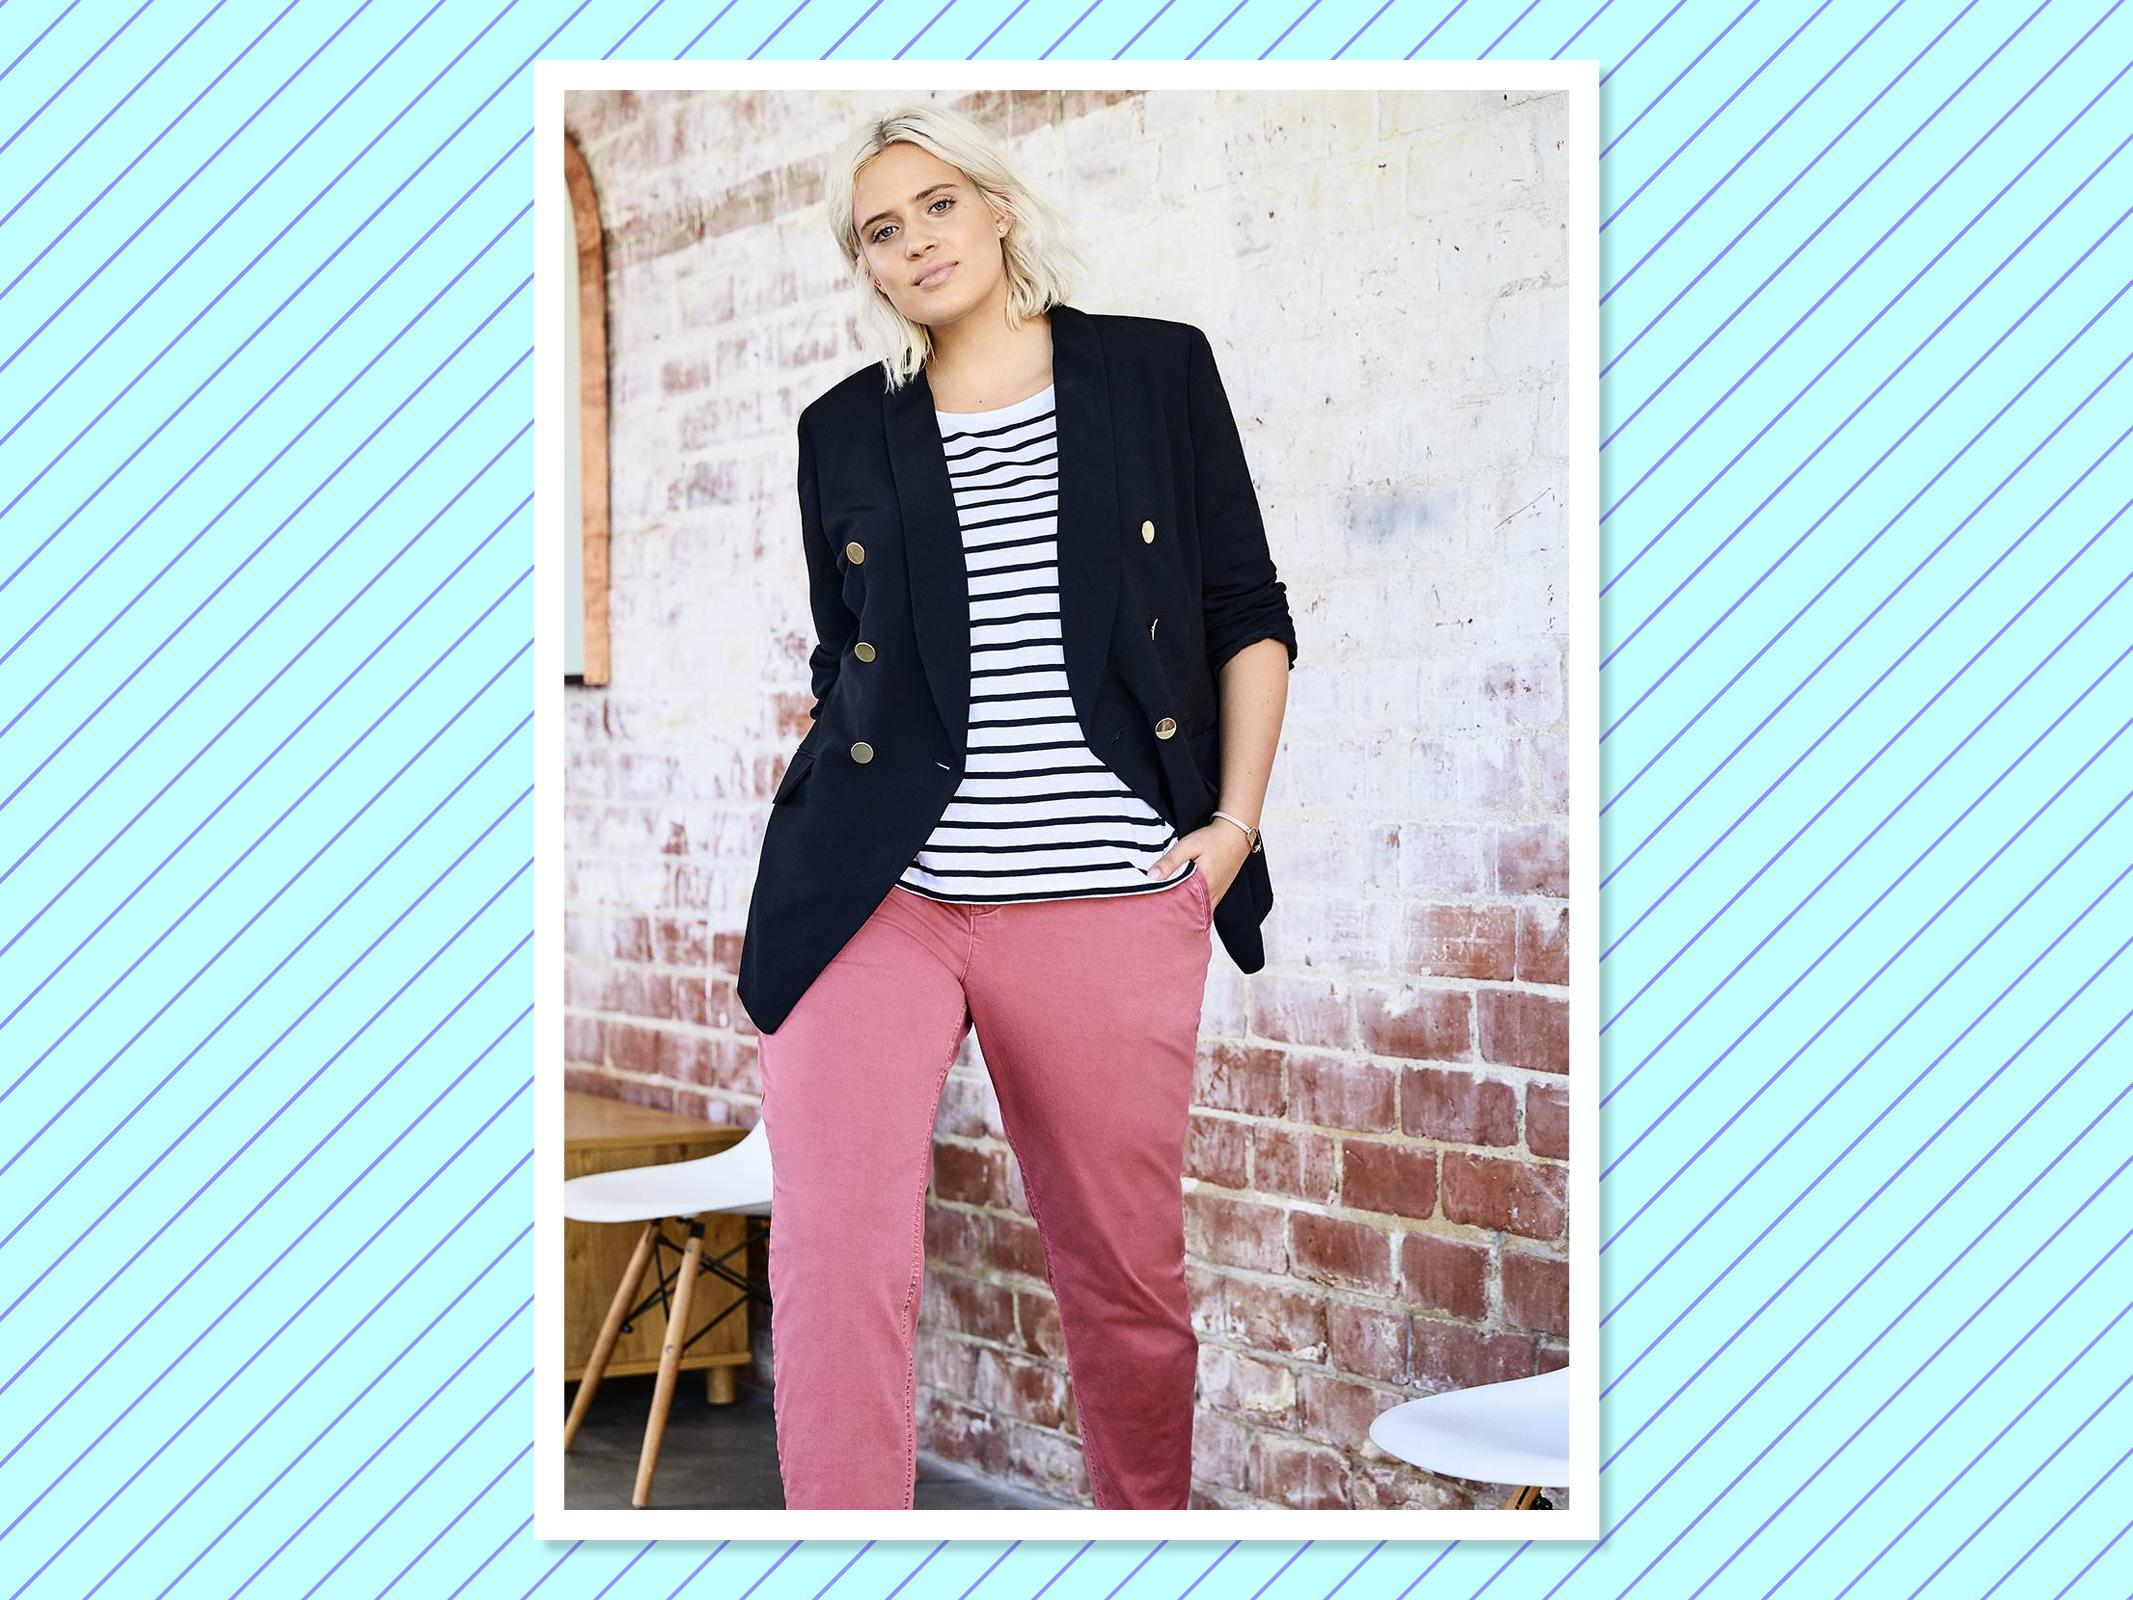 """<p>If you are a young professional who favors an ever-so-cute preppy vibe with a little personality, this is the store for you. After an overwhelming amount of customer requests for the successful brand to extend its sizes, Loft launched a full-on plus-size department last September. <a href=""""https://www.loft.com/plus-view-all/cat3760001"""" rel=""""nofollow noopener"""" target=""""_blank"""" data-ylk=""""slk:Loft"""" class=""""link rapid-noclick-resp"""">Loft</a> offers relaxed fashion for work or home, from classic tailored suits to separates to dresses. Sizes 0-26 (Photo: Loft) </p>"""